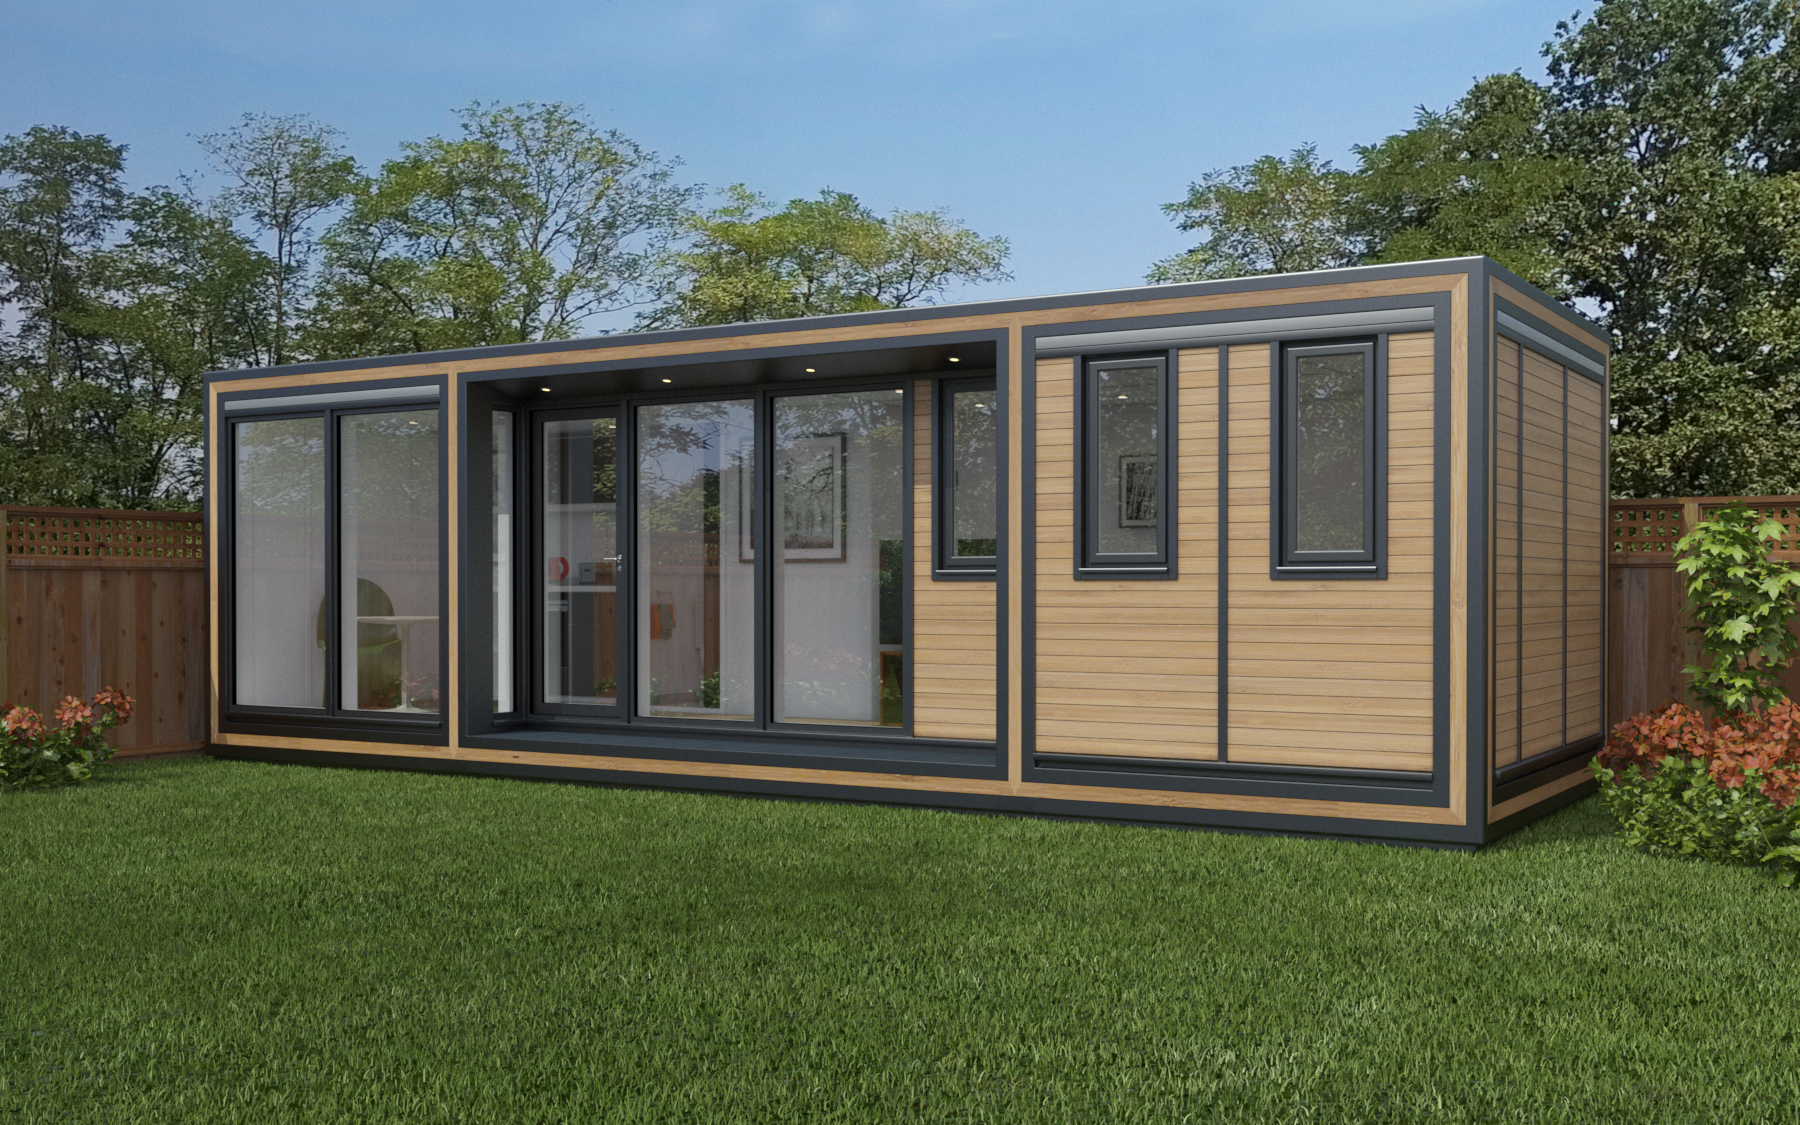 ZEDBOX 825  (8 x 2.5)  Internal Size: 8543 x 2720  External Size: 9013 x 3190  Bed Options: Single or Double  Kitchen Options: Micro or Premier  Wet Room Options: Yes  Portico: Yes  Price:  £34,000     Optional Extras    Request Zedbox Catalogue